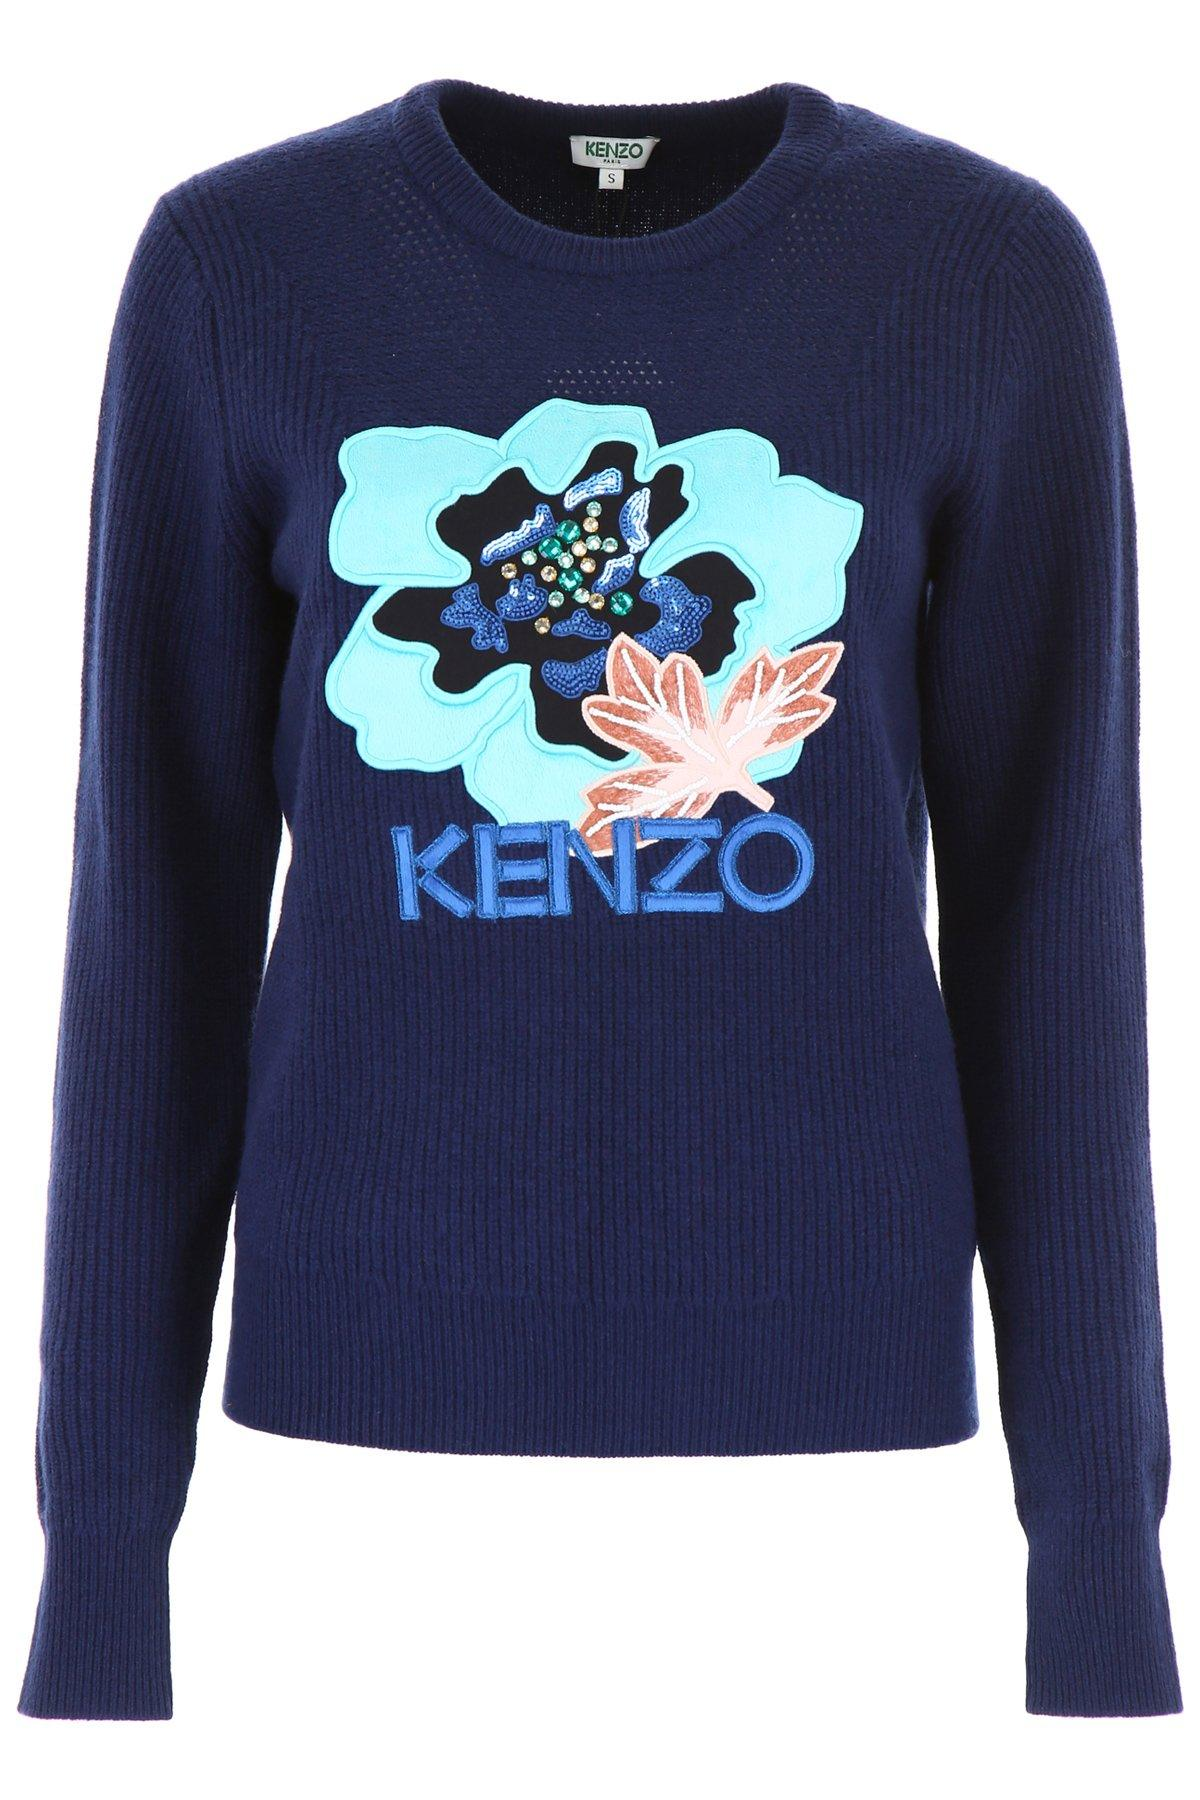 0a4cd0e9 Lyst - KENZO Logo Crewneck Jumper in Blue - Save 42%